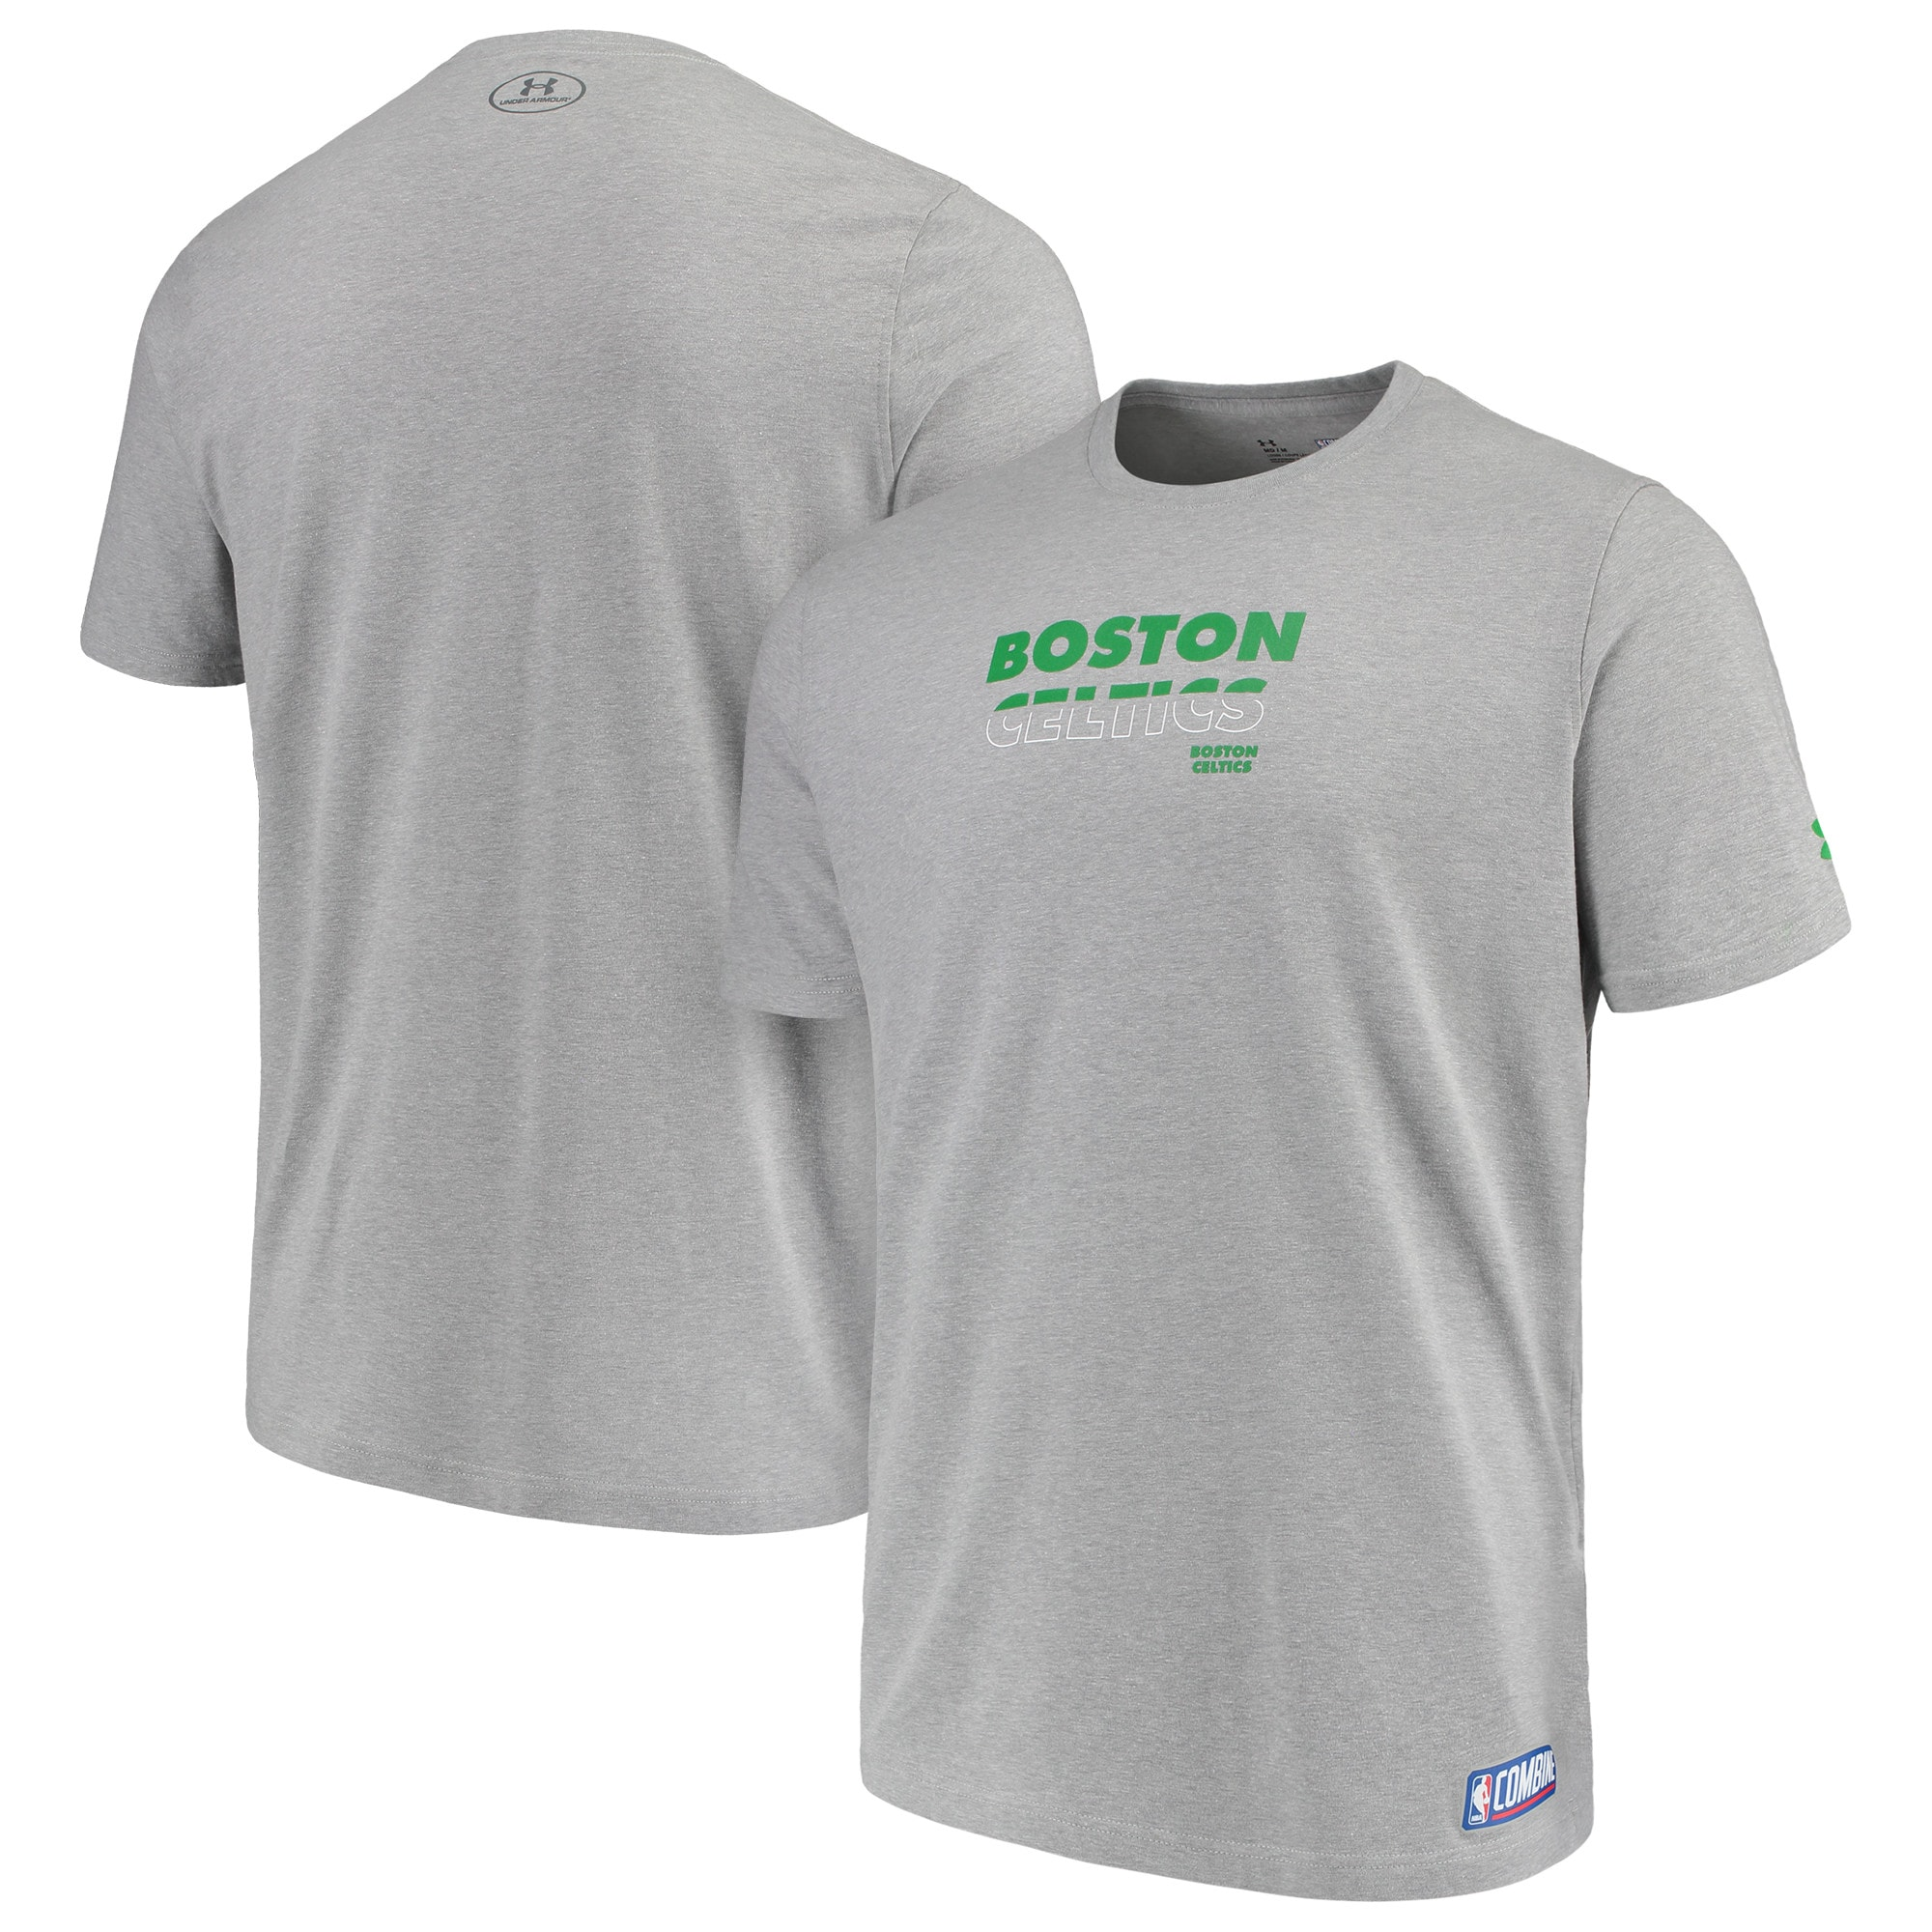 Boston Celtics Under Armour Combine Authentic Start Your Story Performance Tri-Blend T-Shirt - Heathered Charcoal